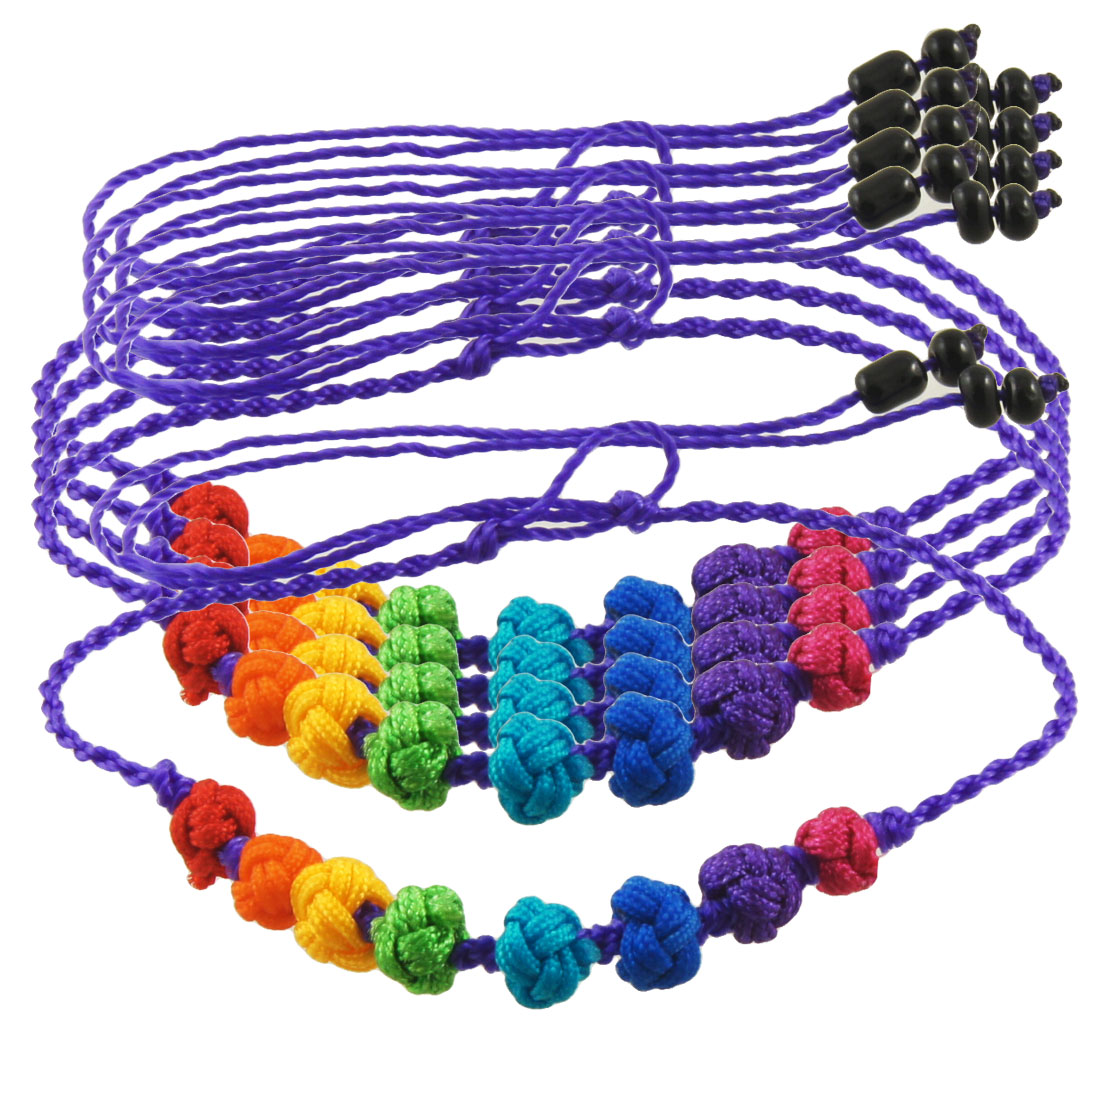 Braided Nylon Ball Decor Adjustable Handmade Braid Purple String Strand Bracelet 5 Pcs